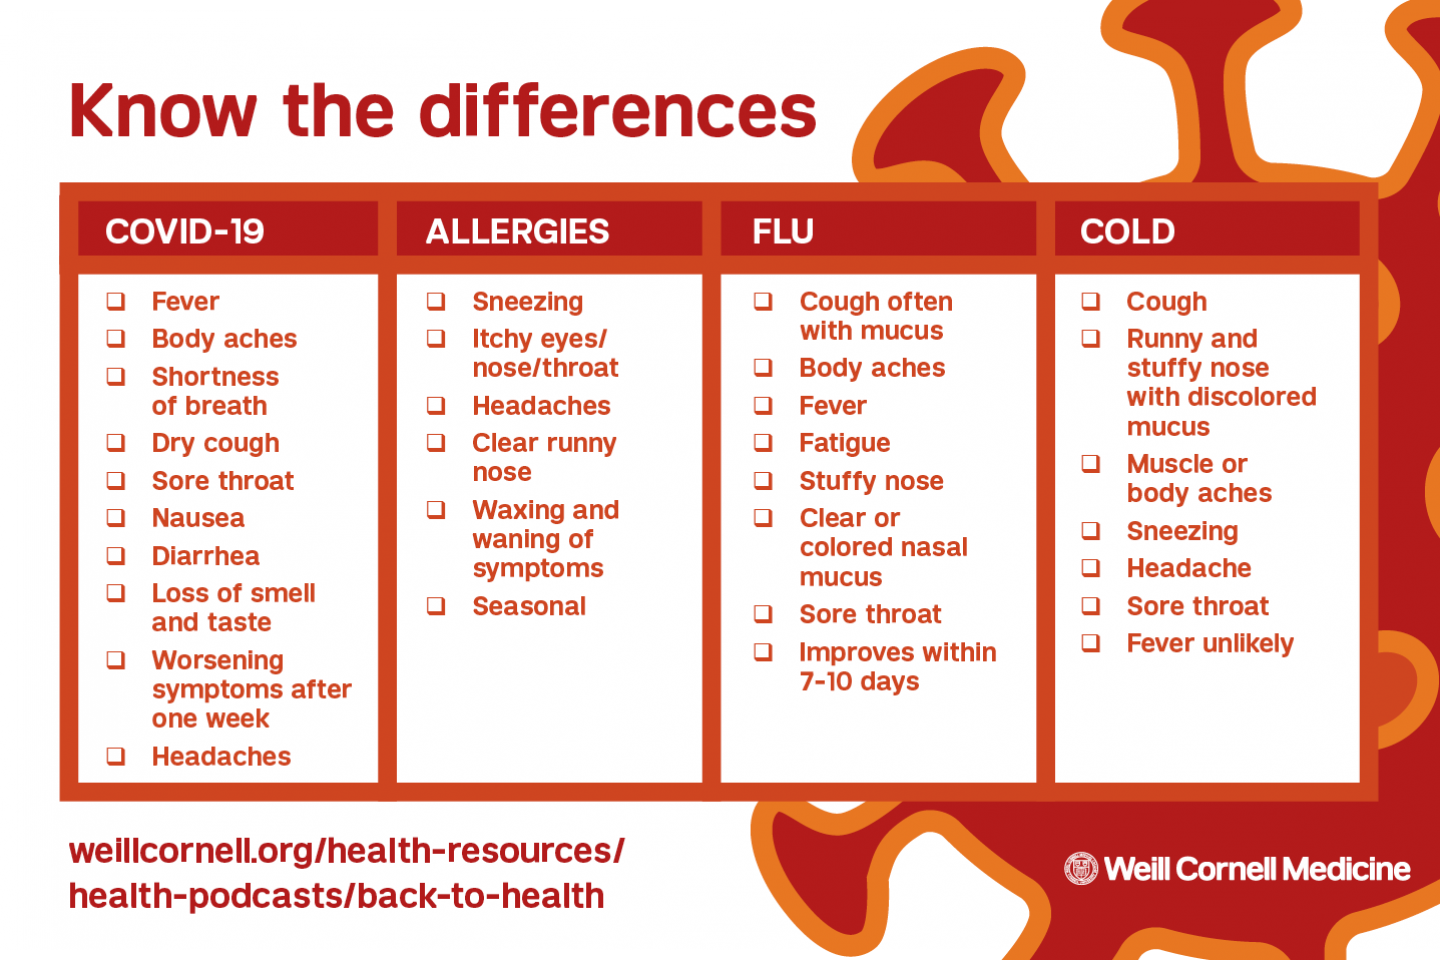 know the difference between covid, allergies, flu, and cold